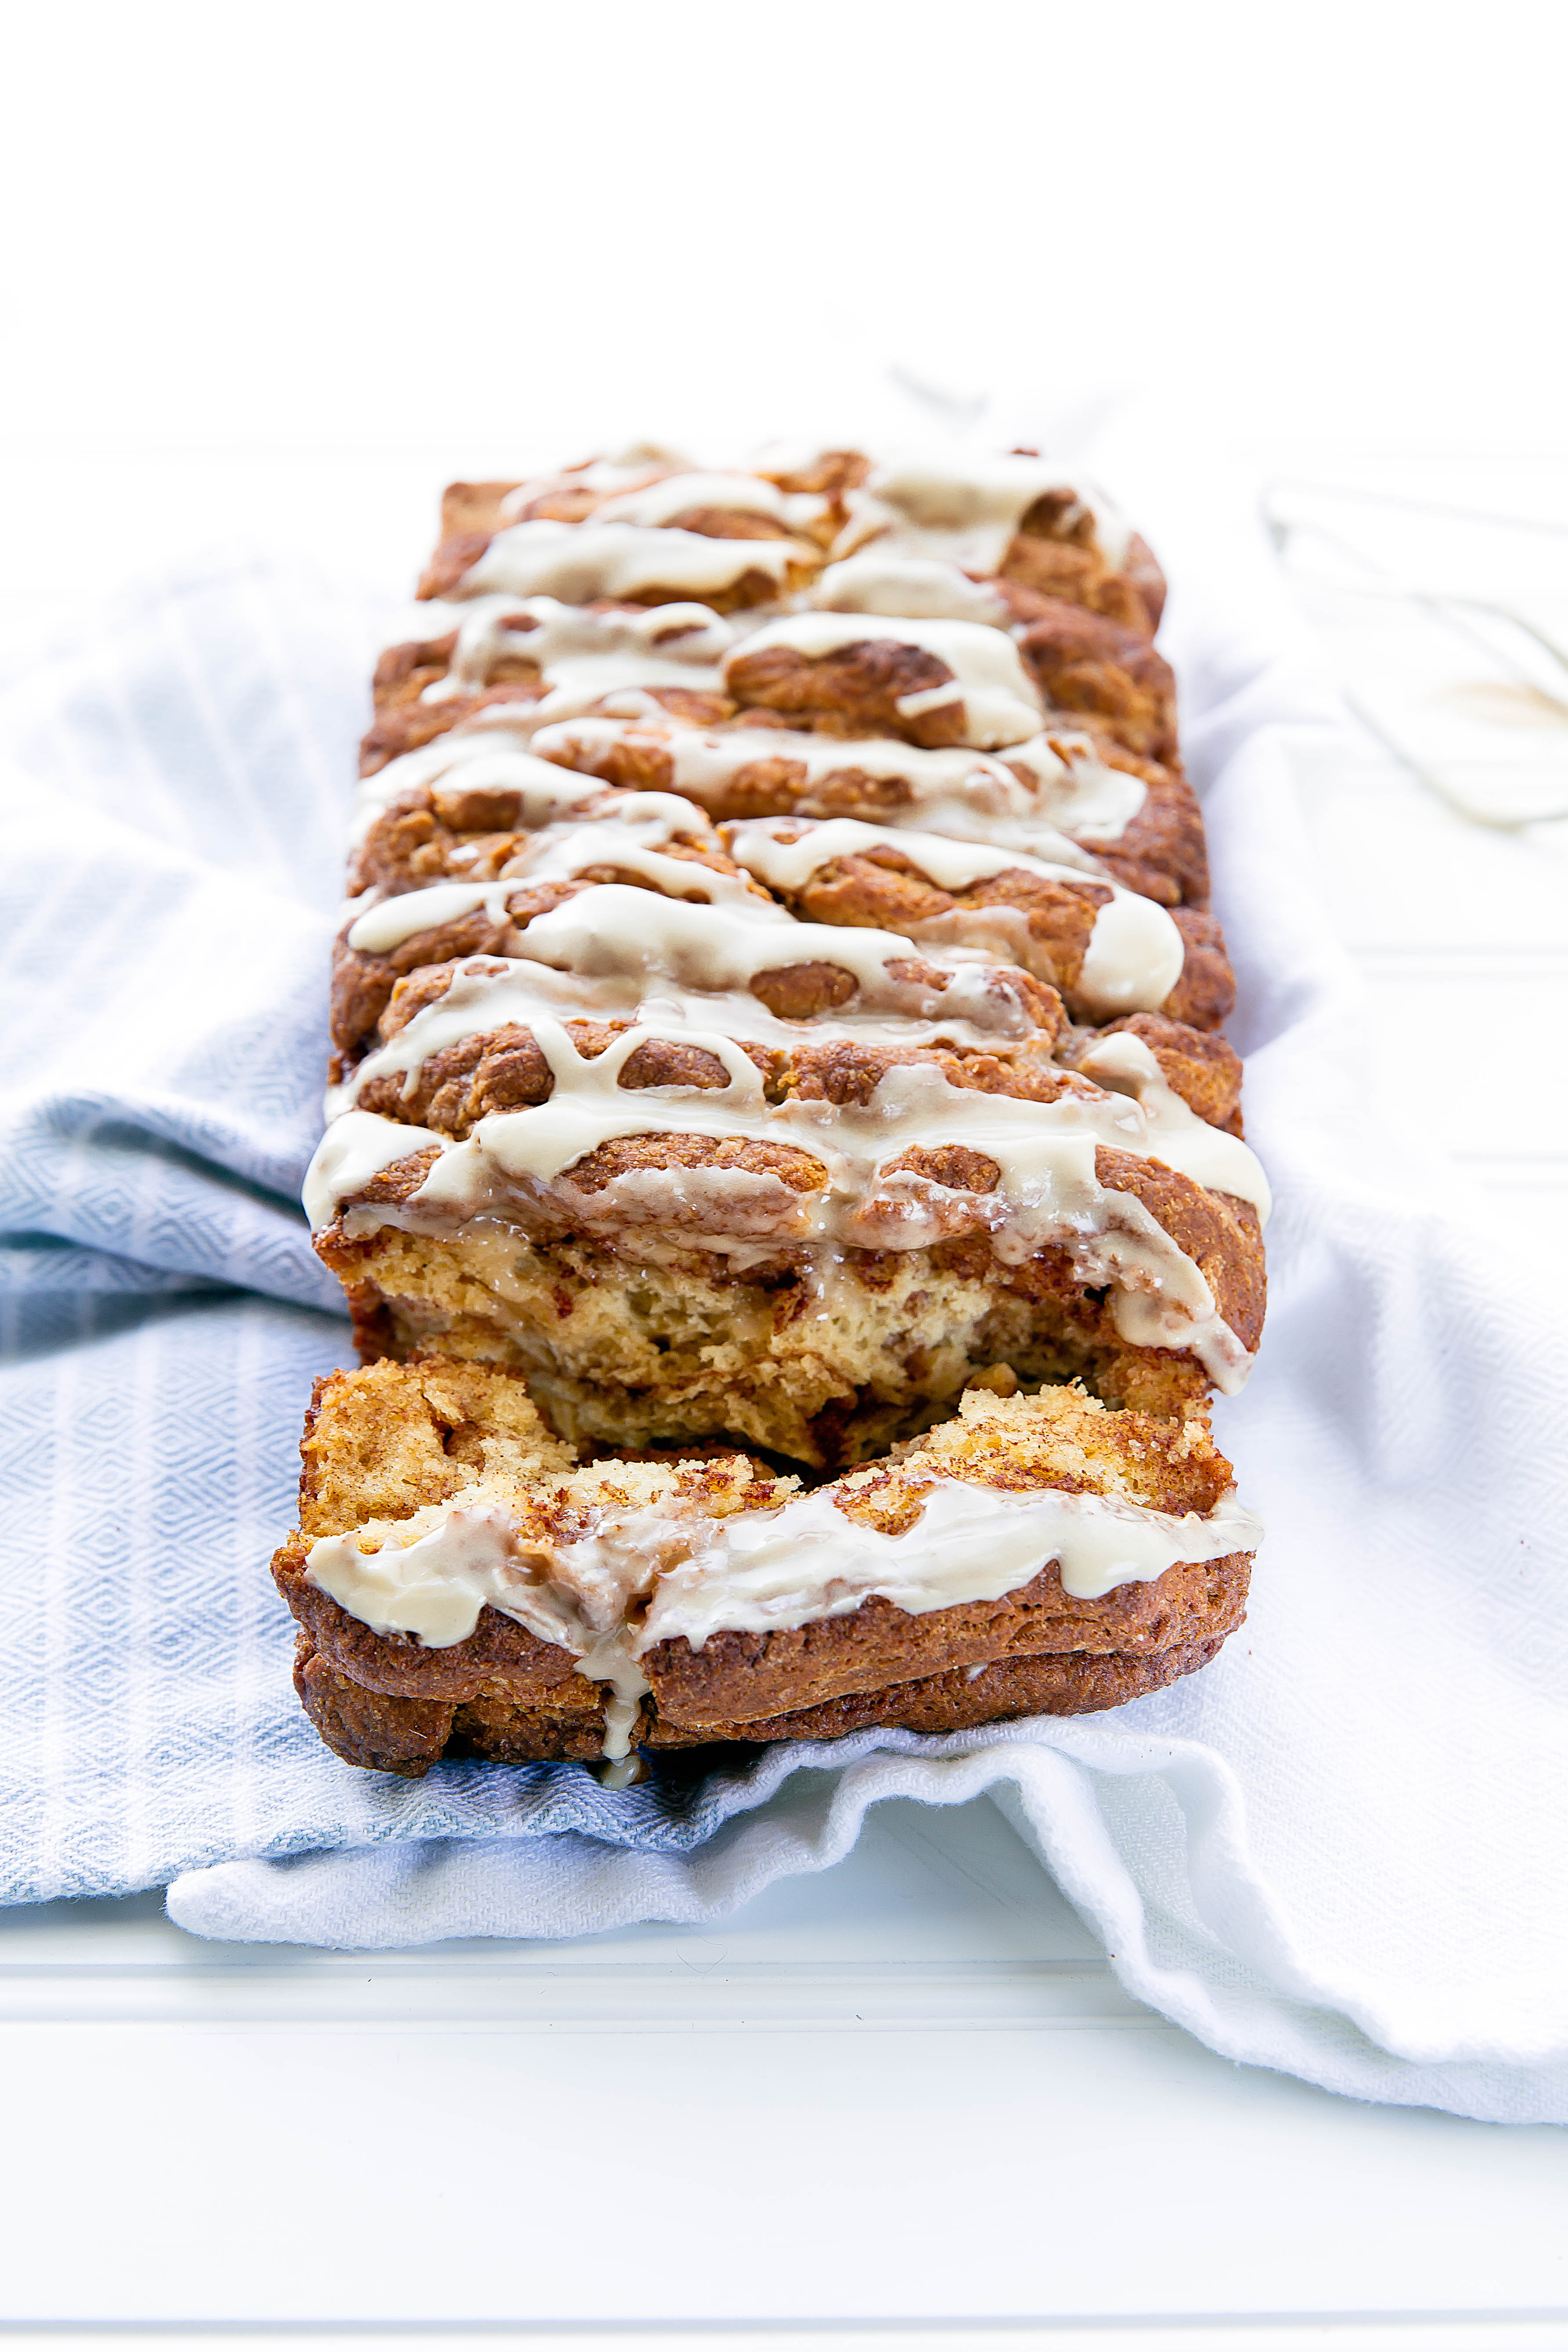 This French Toast Scone Bread packs warm cinnamon, vanilla, and hints of maple in a fluffy pull-apart loaf. Breakfast just got a whole lot more fun!